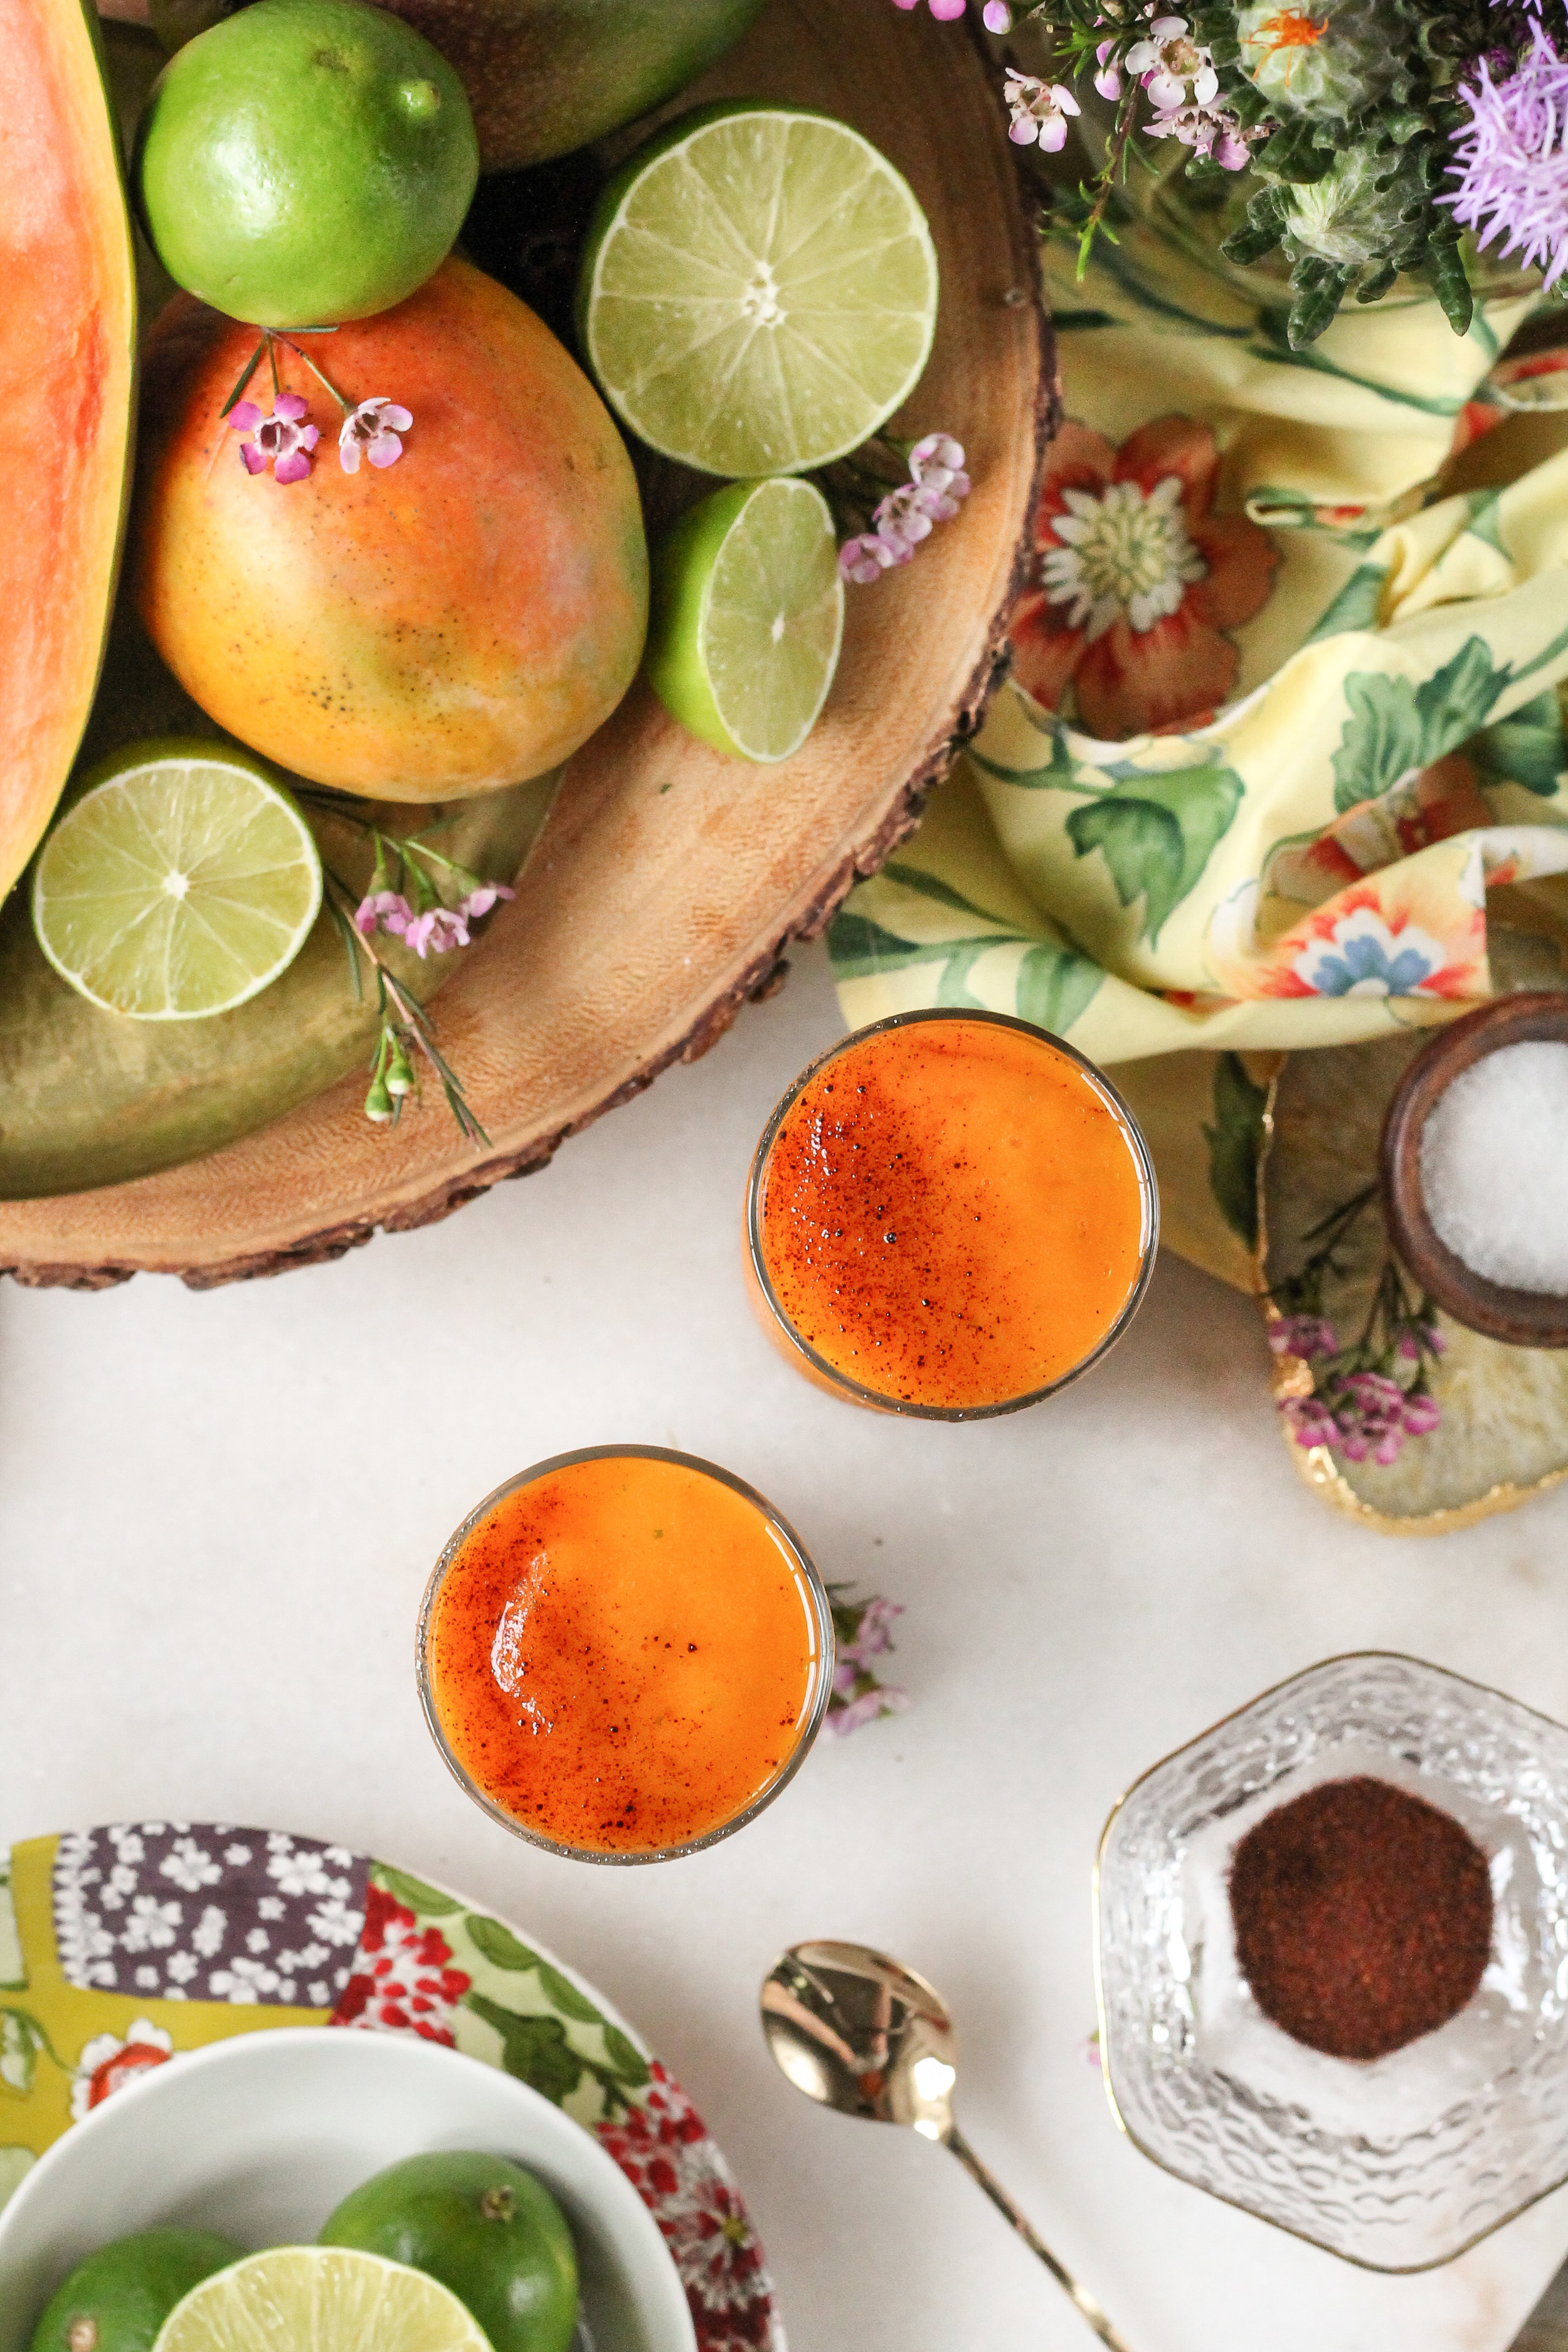 These sweet and spicy Salted Lime & Chili Mango Papaya Slushies are unexpected and refreshing!  The perfect way to cool off this summer!  Recipe from WWW.PEDANTICFOODIE.COM.